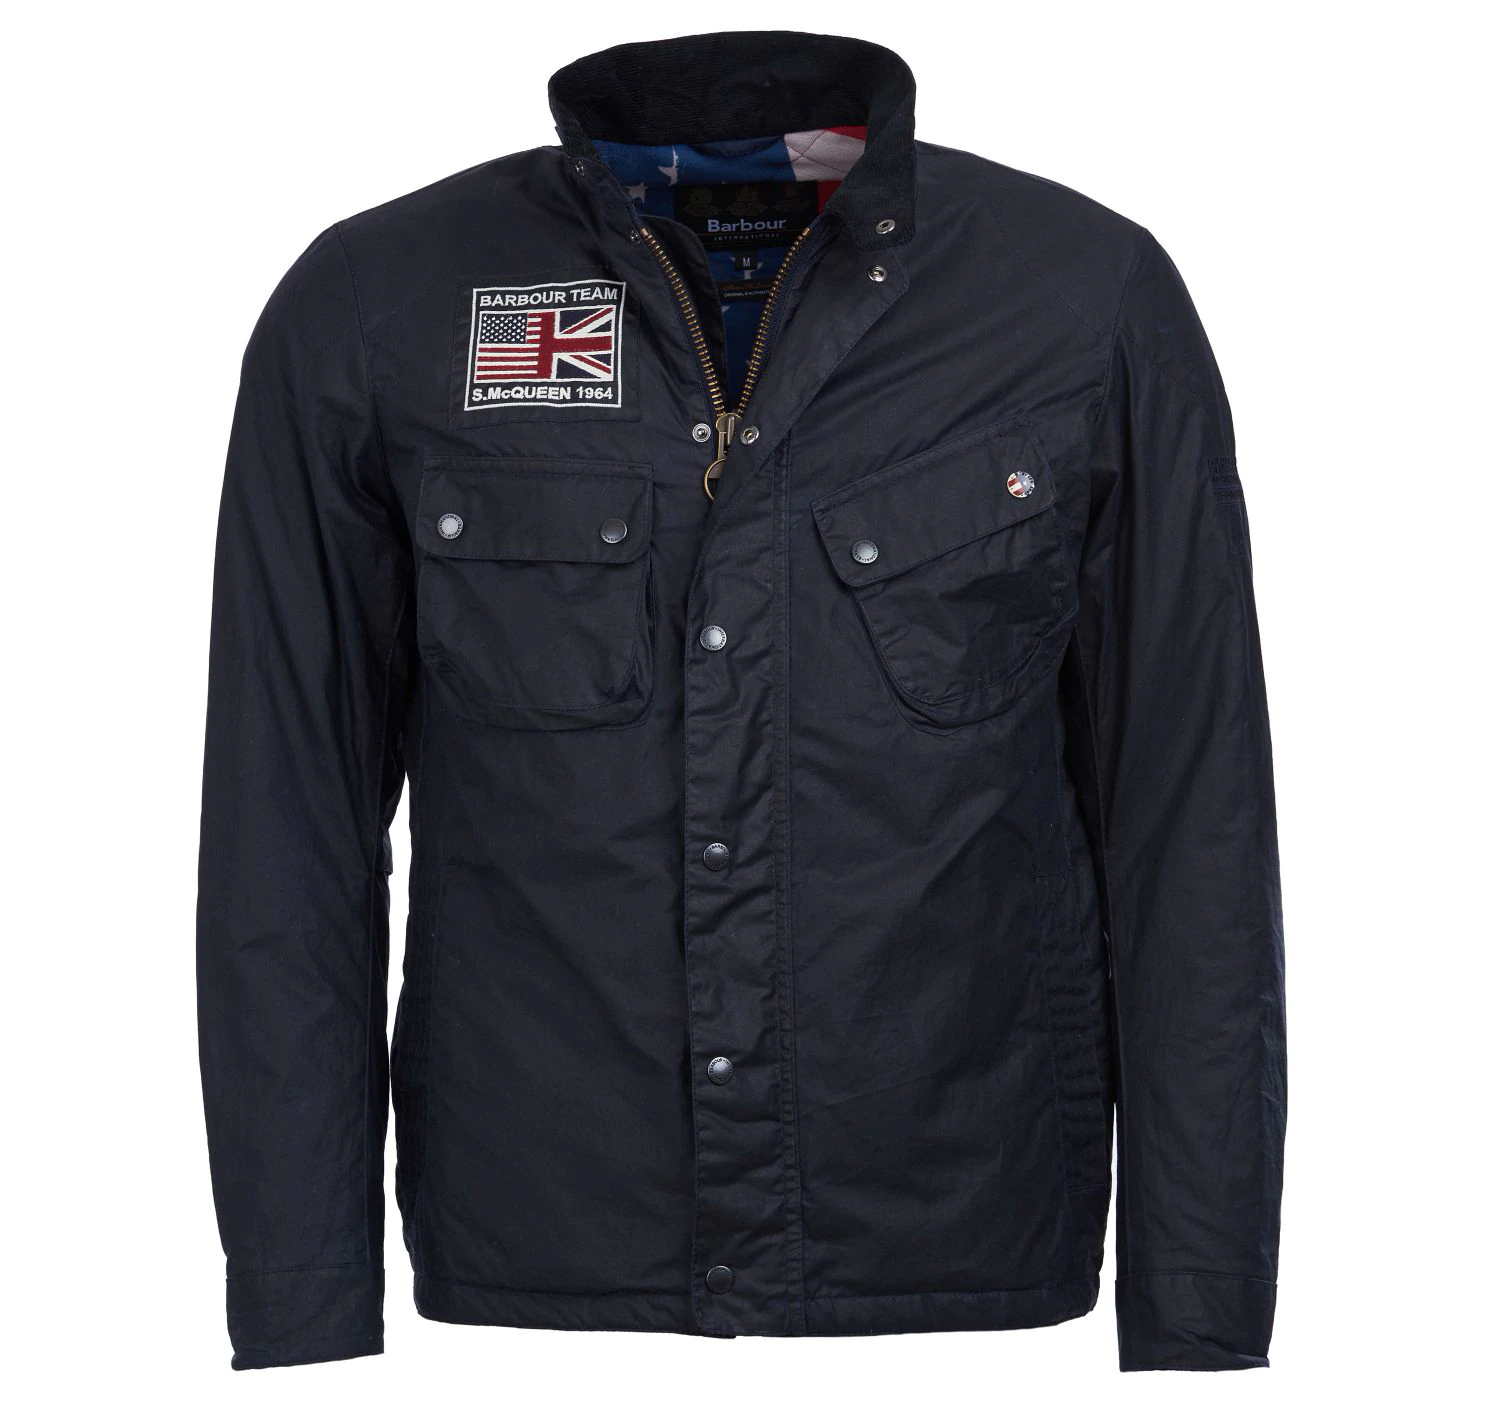 Barbour Barbour Lightweight Wax Jacket Barbour International from the Steve McQueen collection